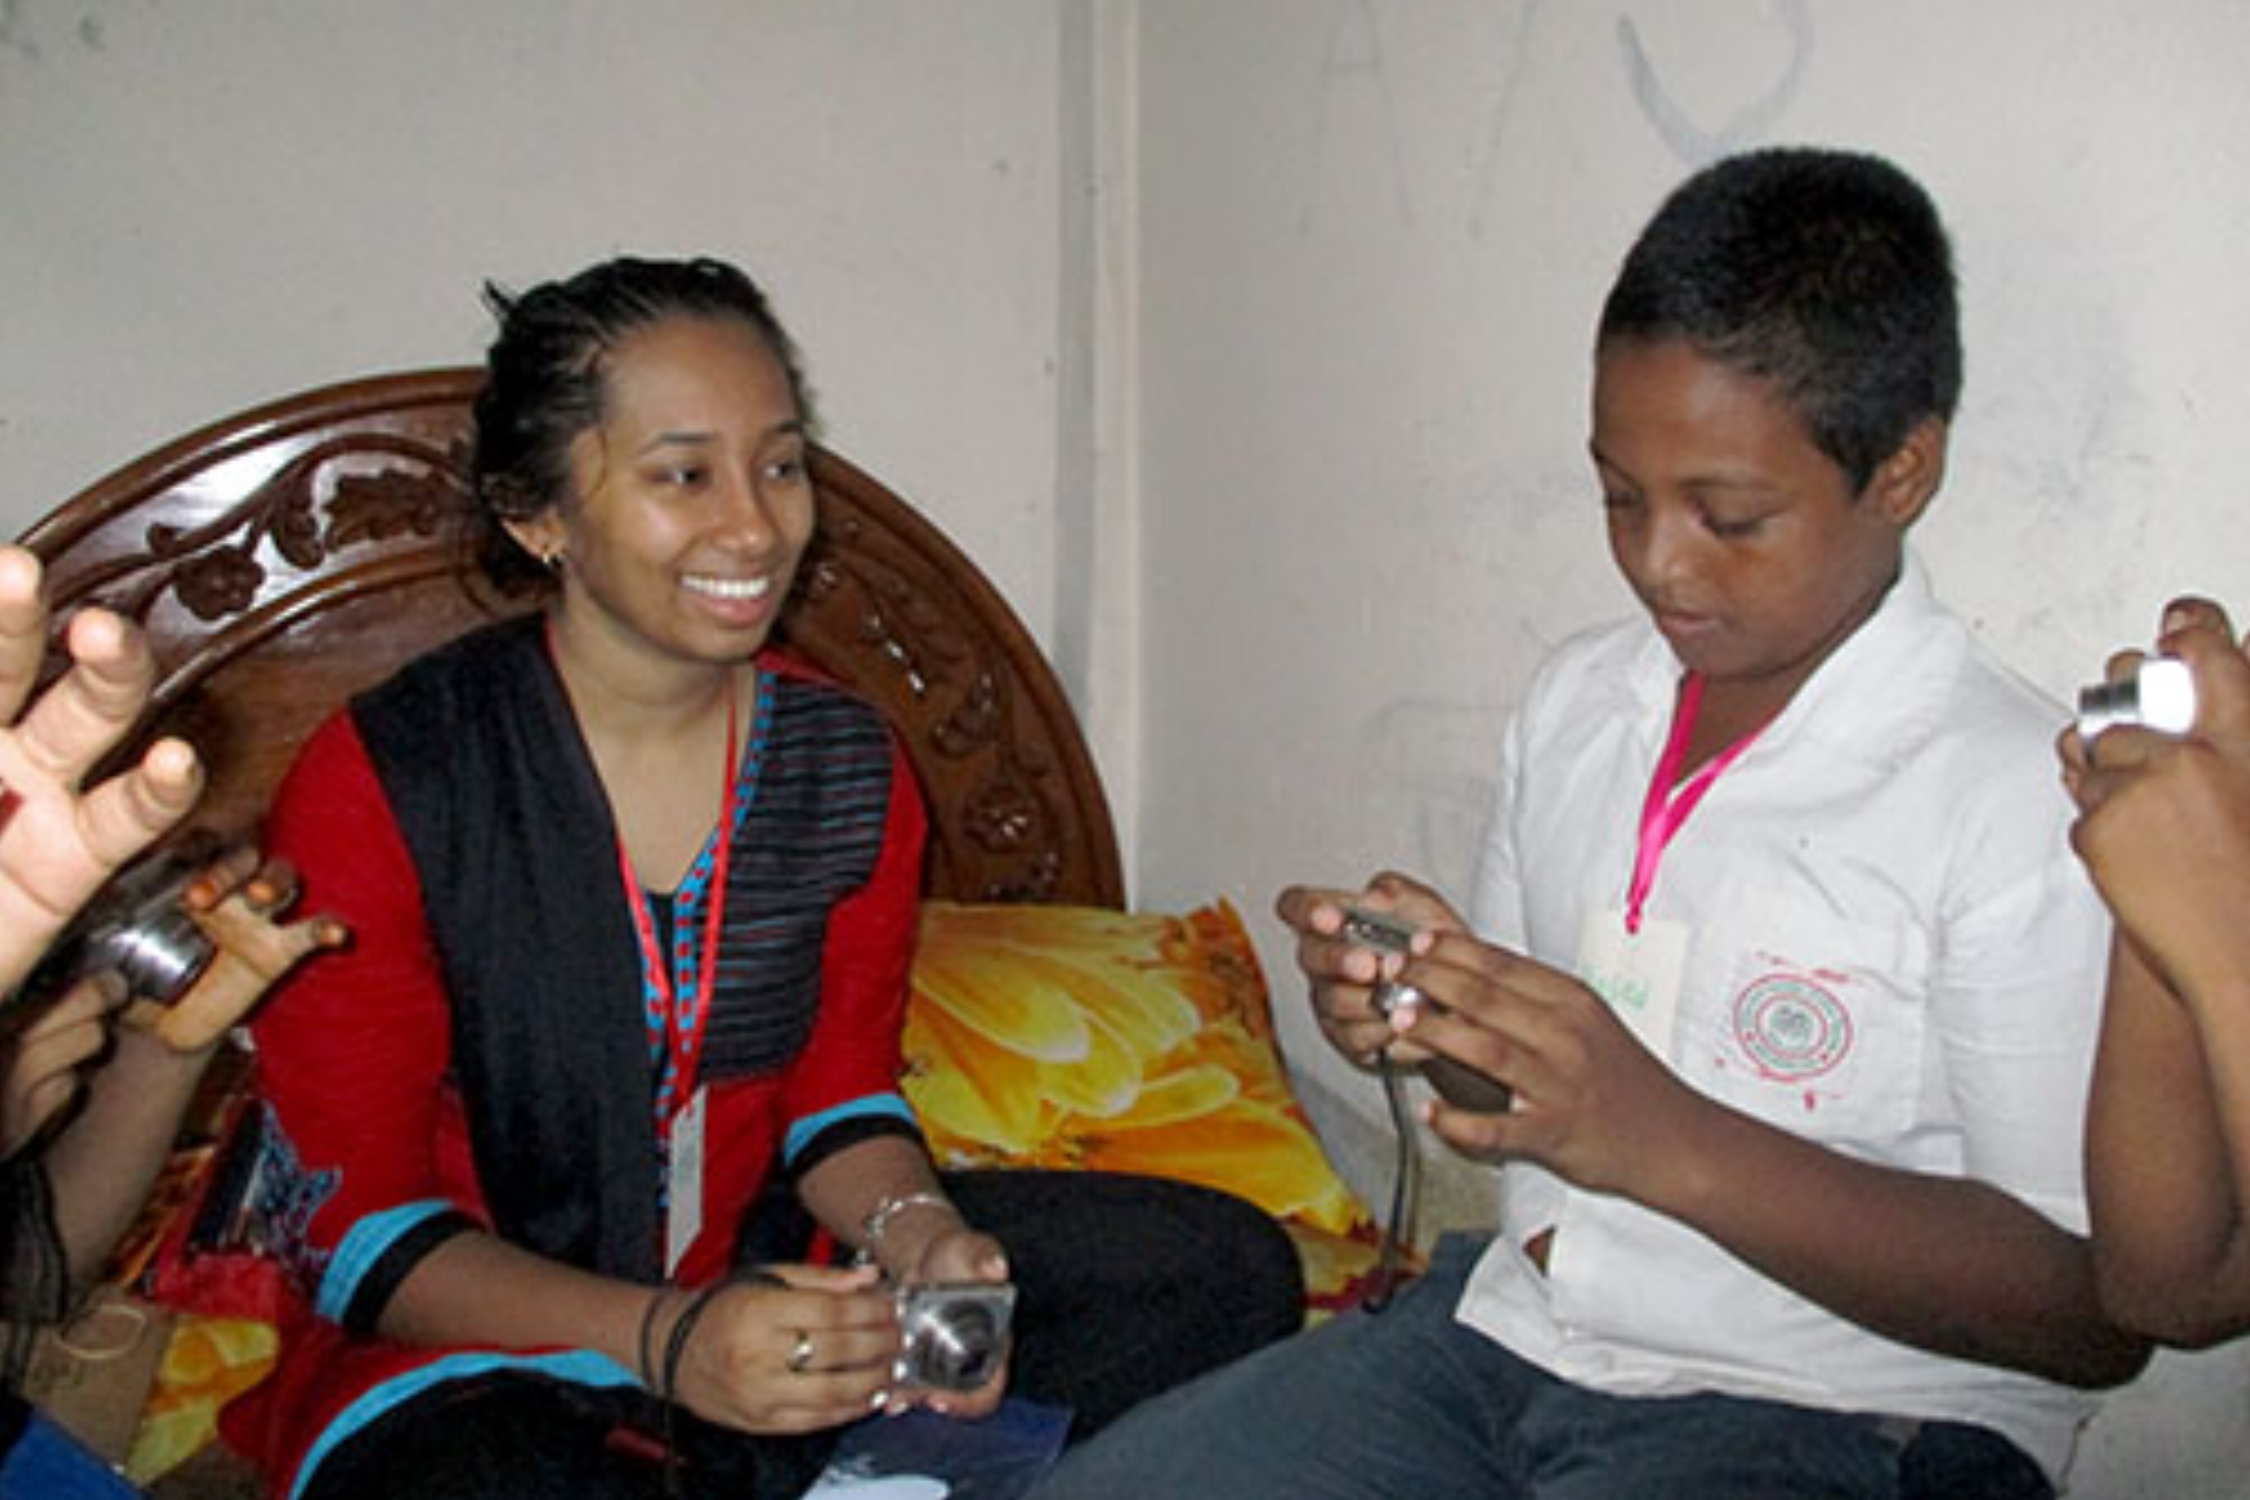 Mehran covers camera settings with her group, taken in one of the students' family home in the Nuru Chala neighborhood.